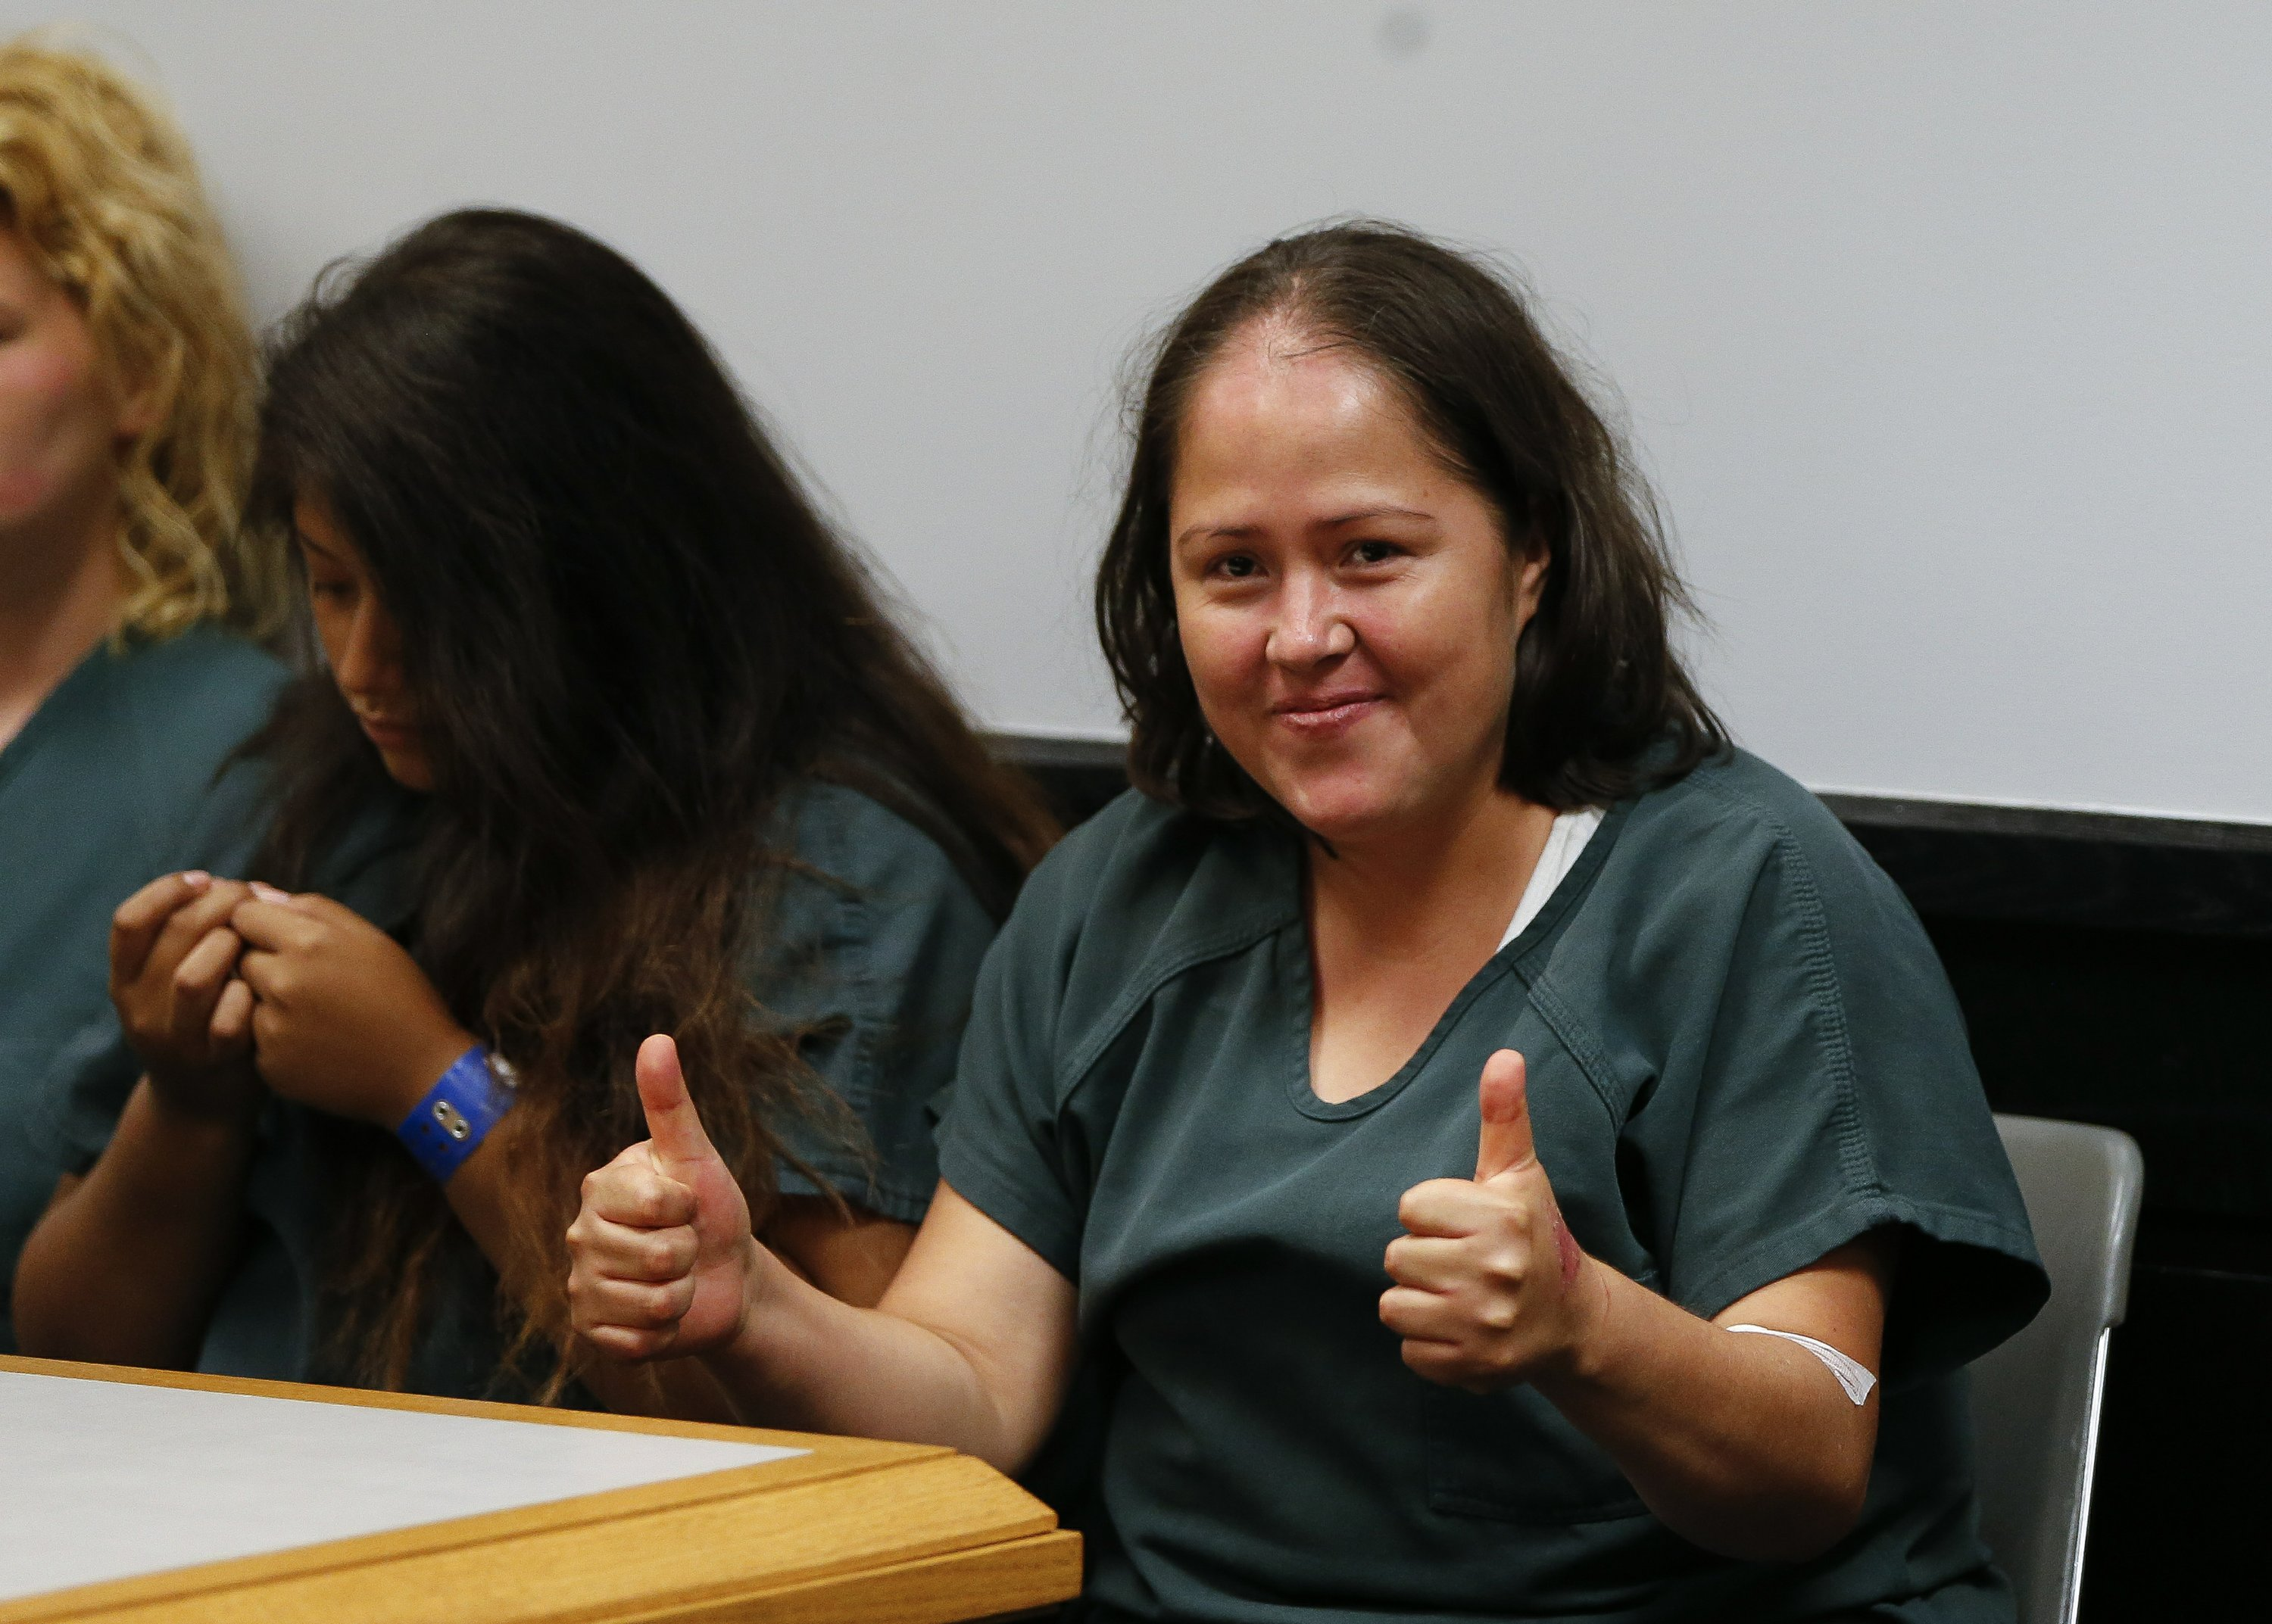 Smiles and thumbs up from woman charged with killing family